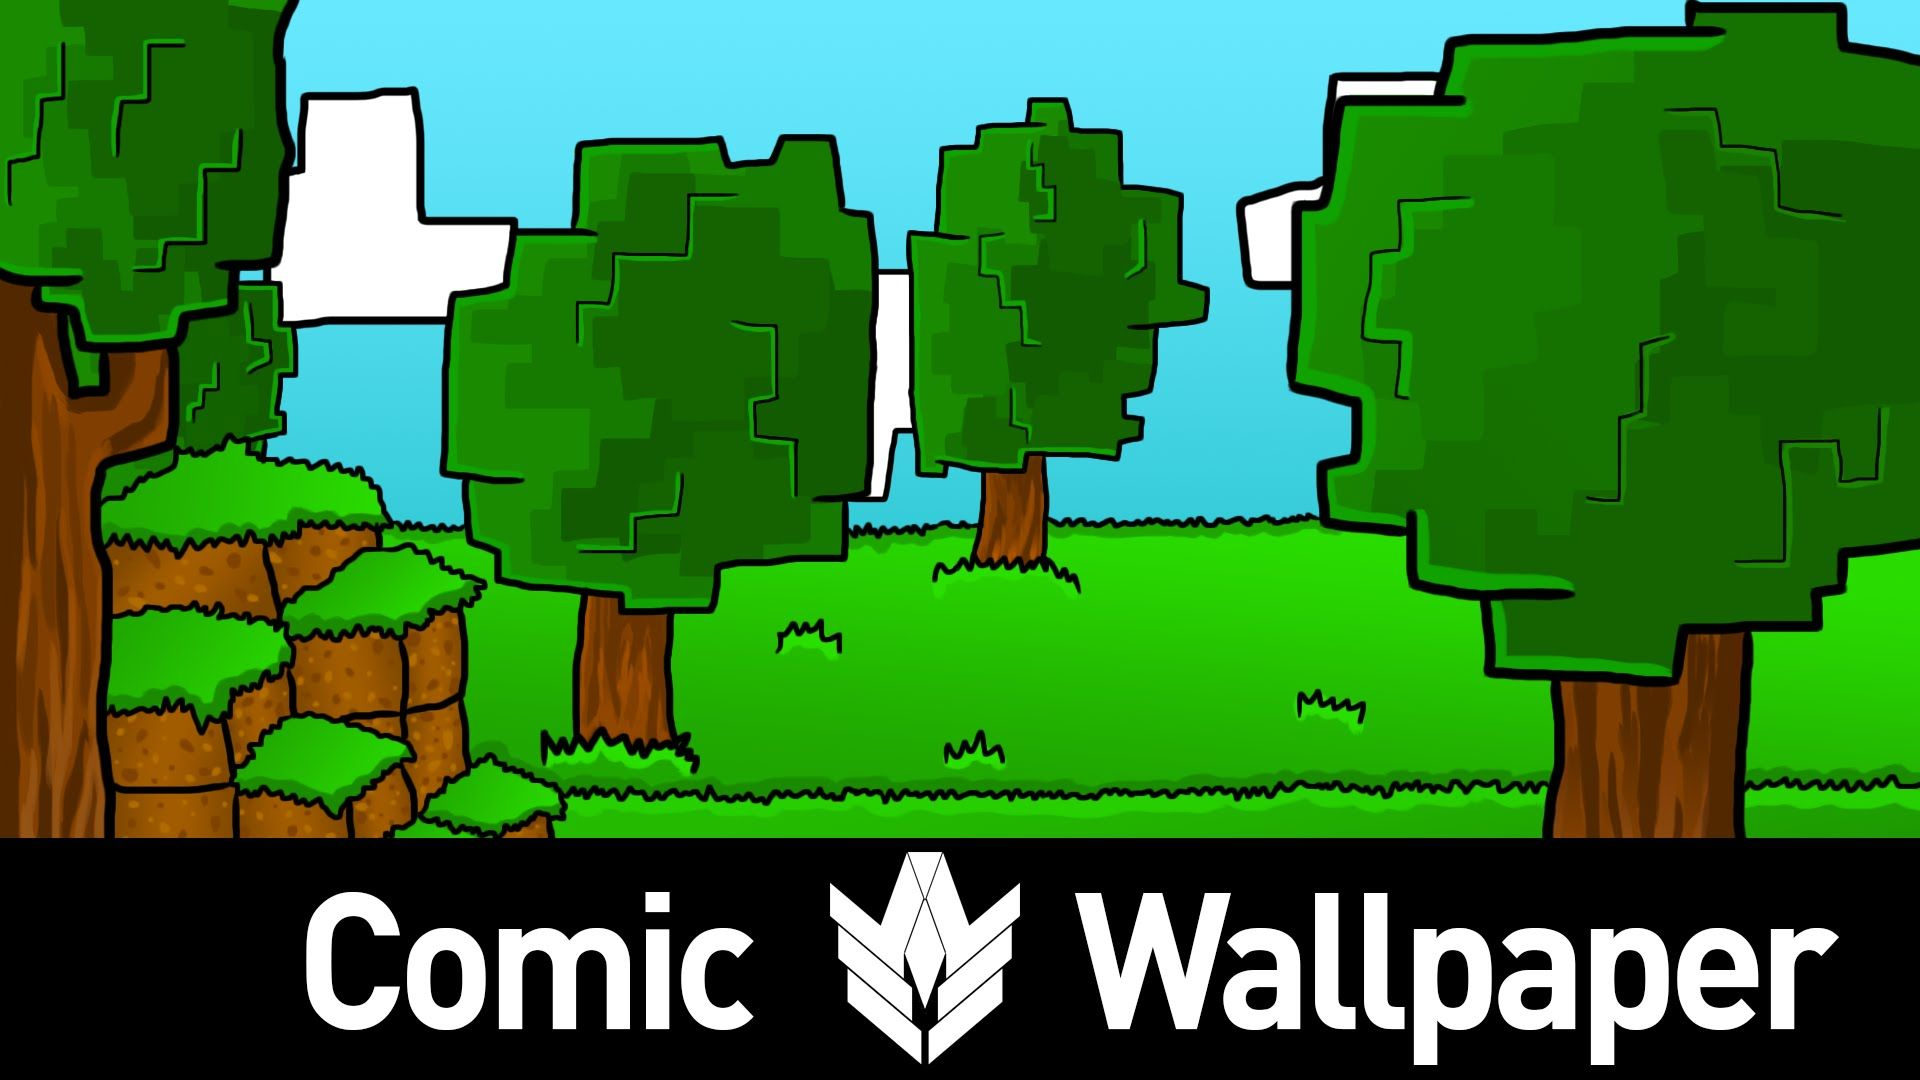 Cool Minecraft Backgrounds Wallpaper 1920x1080 Wallpapers 28